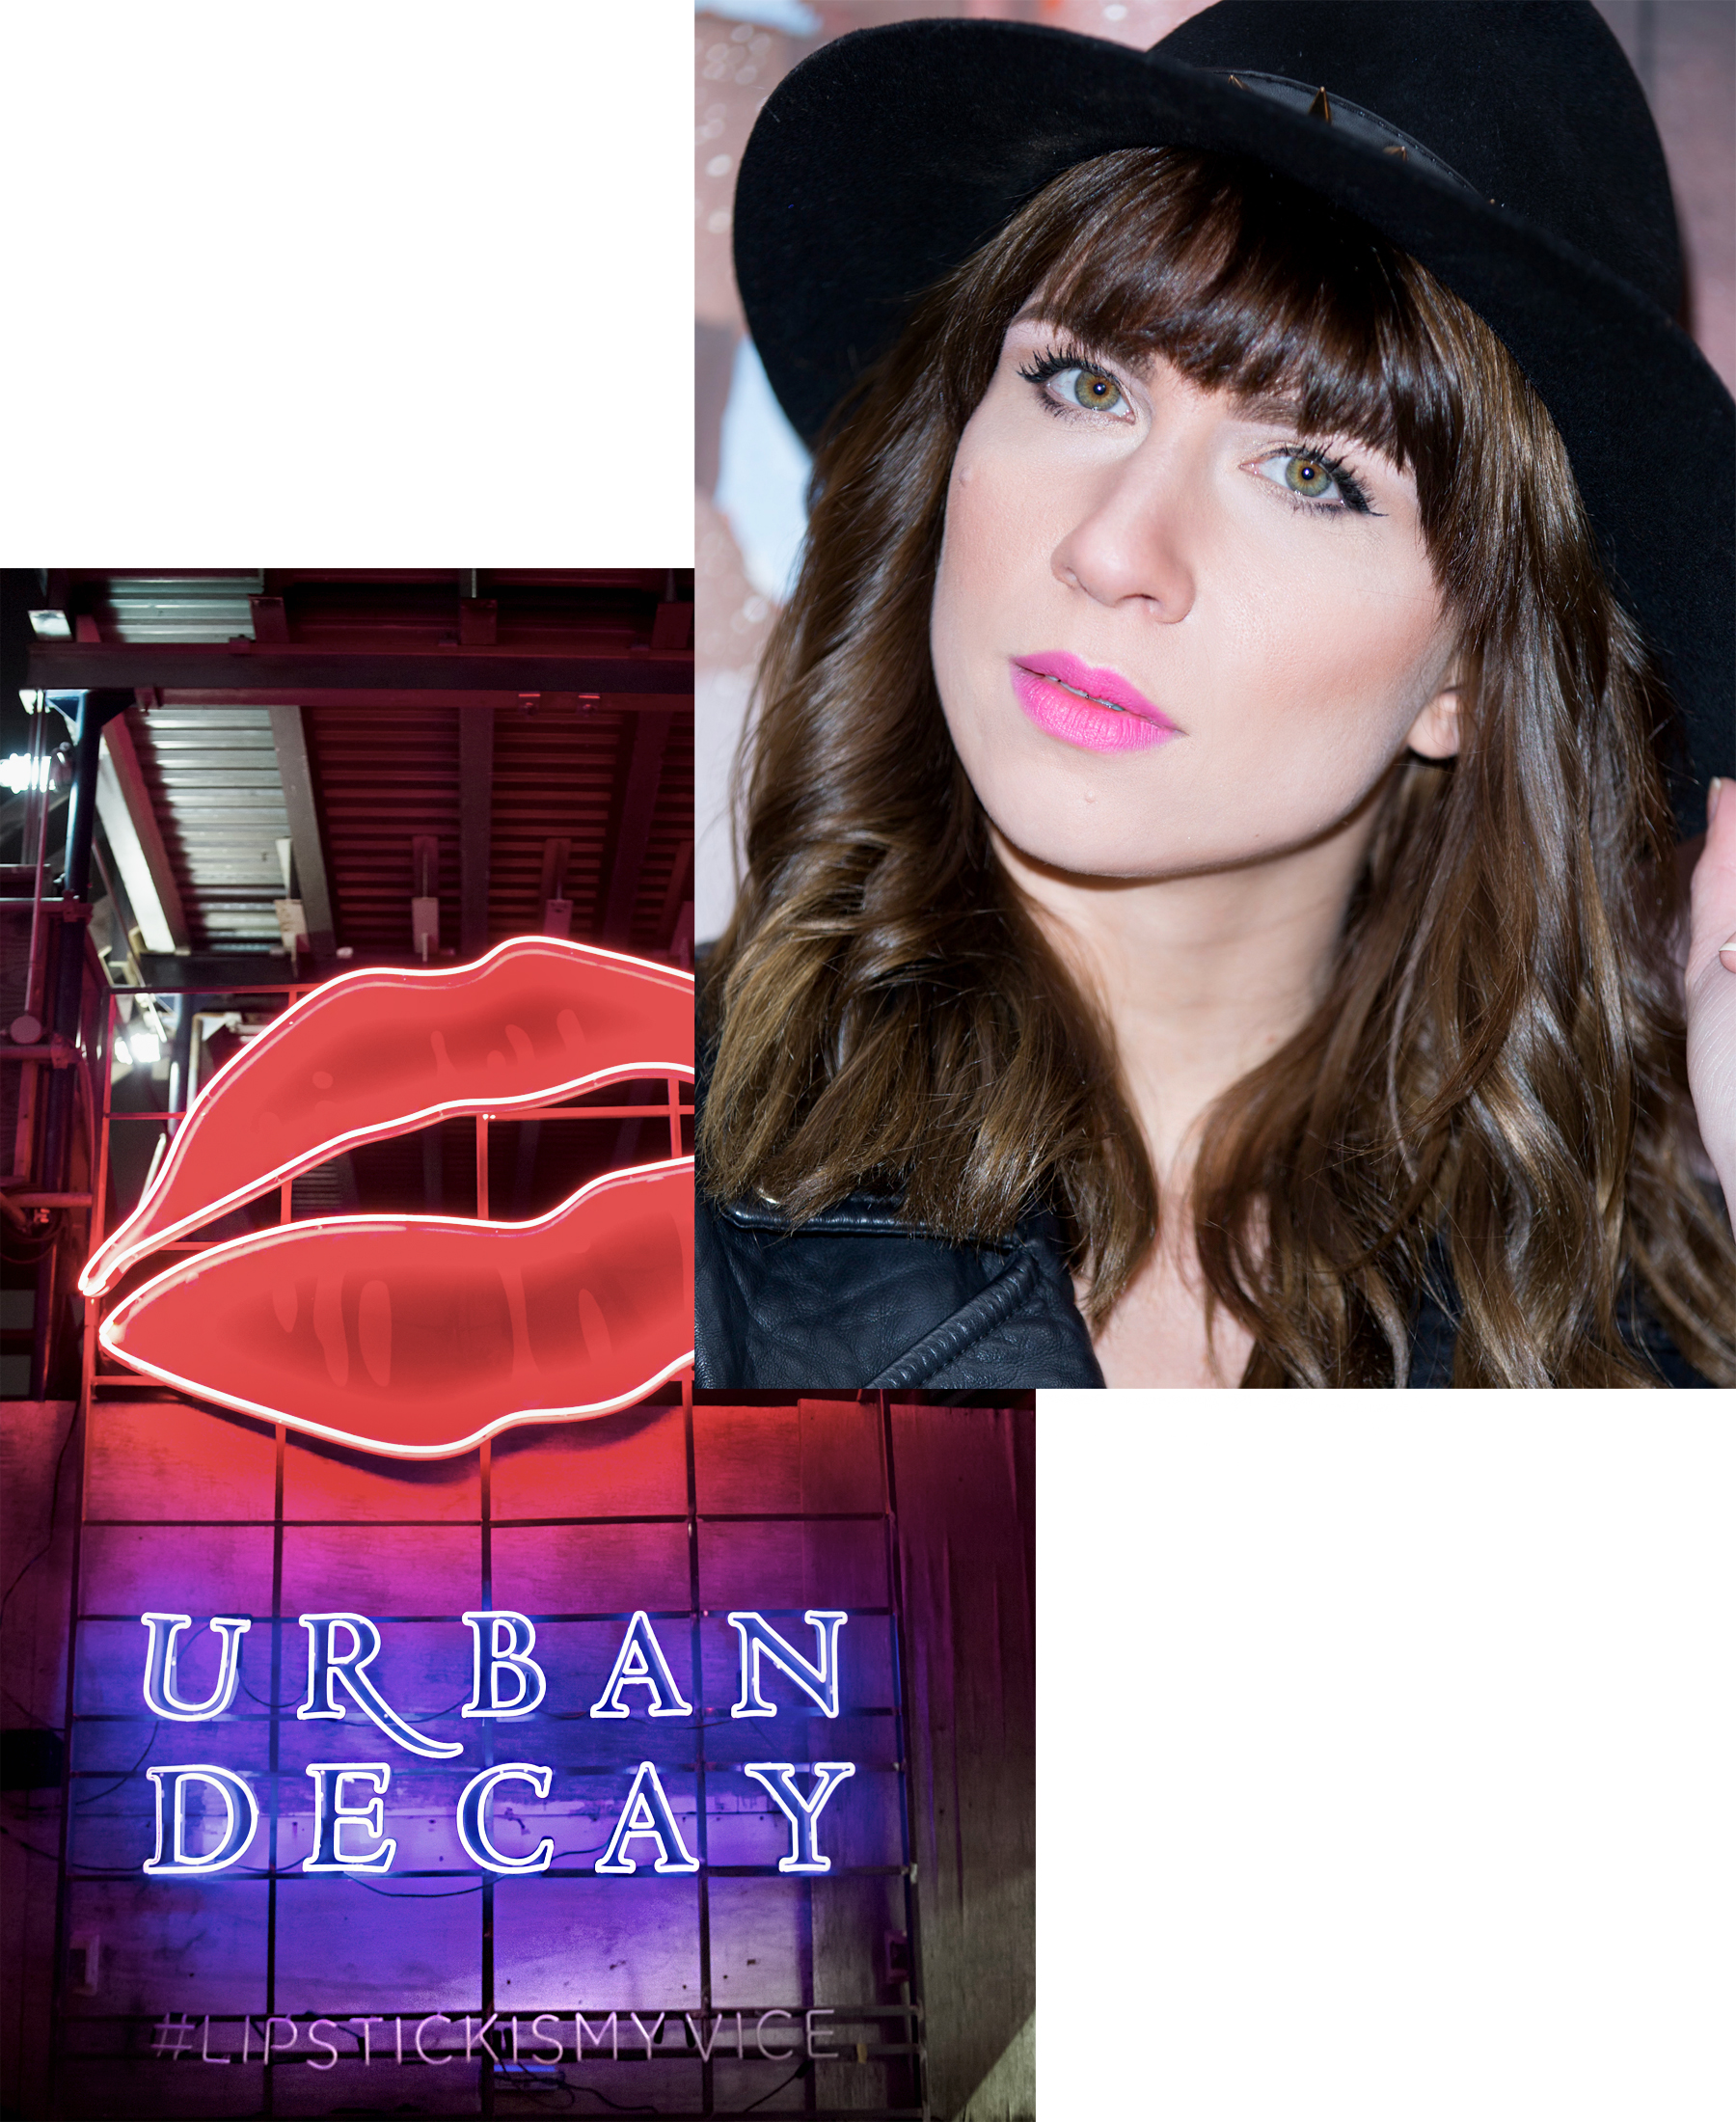 lipstickismyvice ruby rose new york city event urban decay lipstick party backyard industrial party brooklyn beauty beautyblogger makeup rock'n'roll chic fashionblogger germany cats & dogs ricarda schernus blogger 2